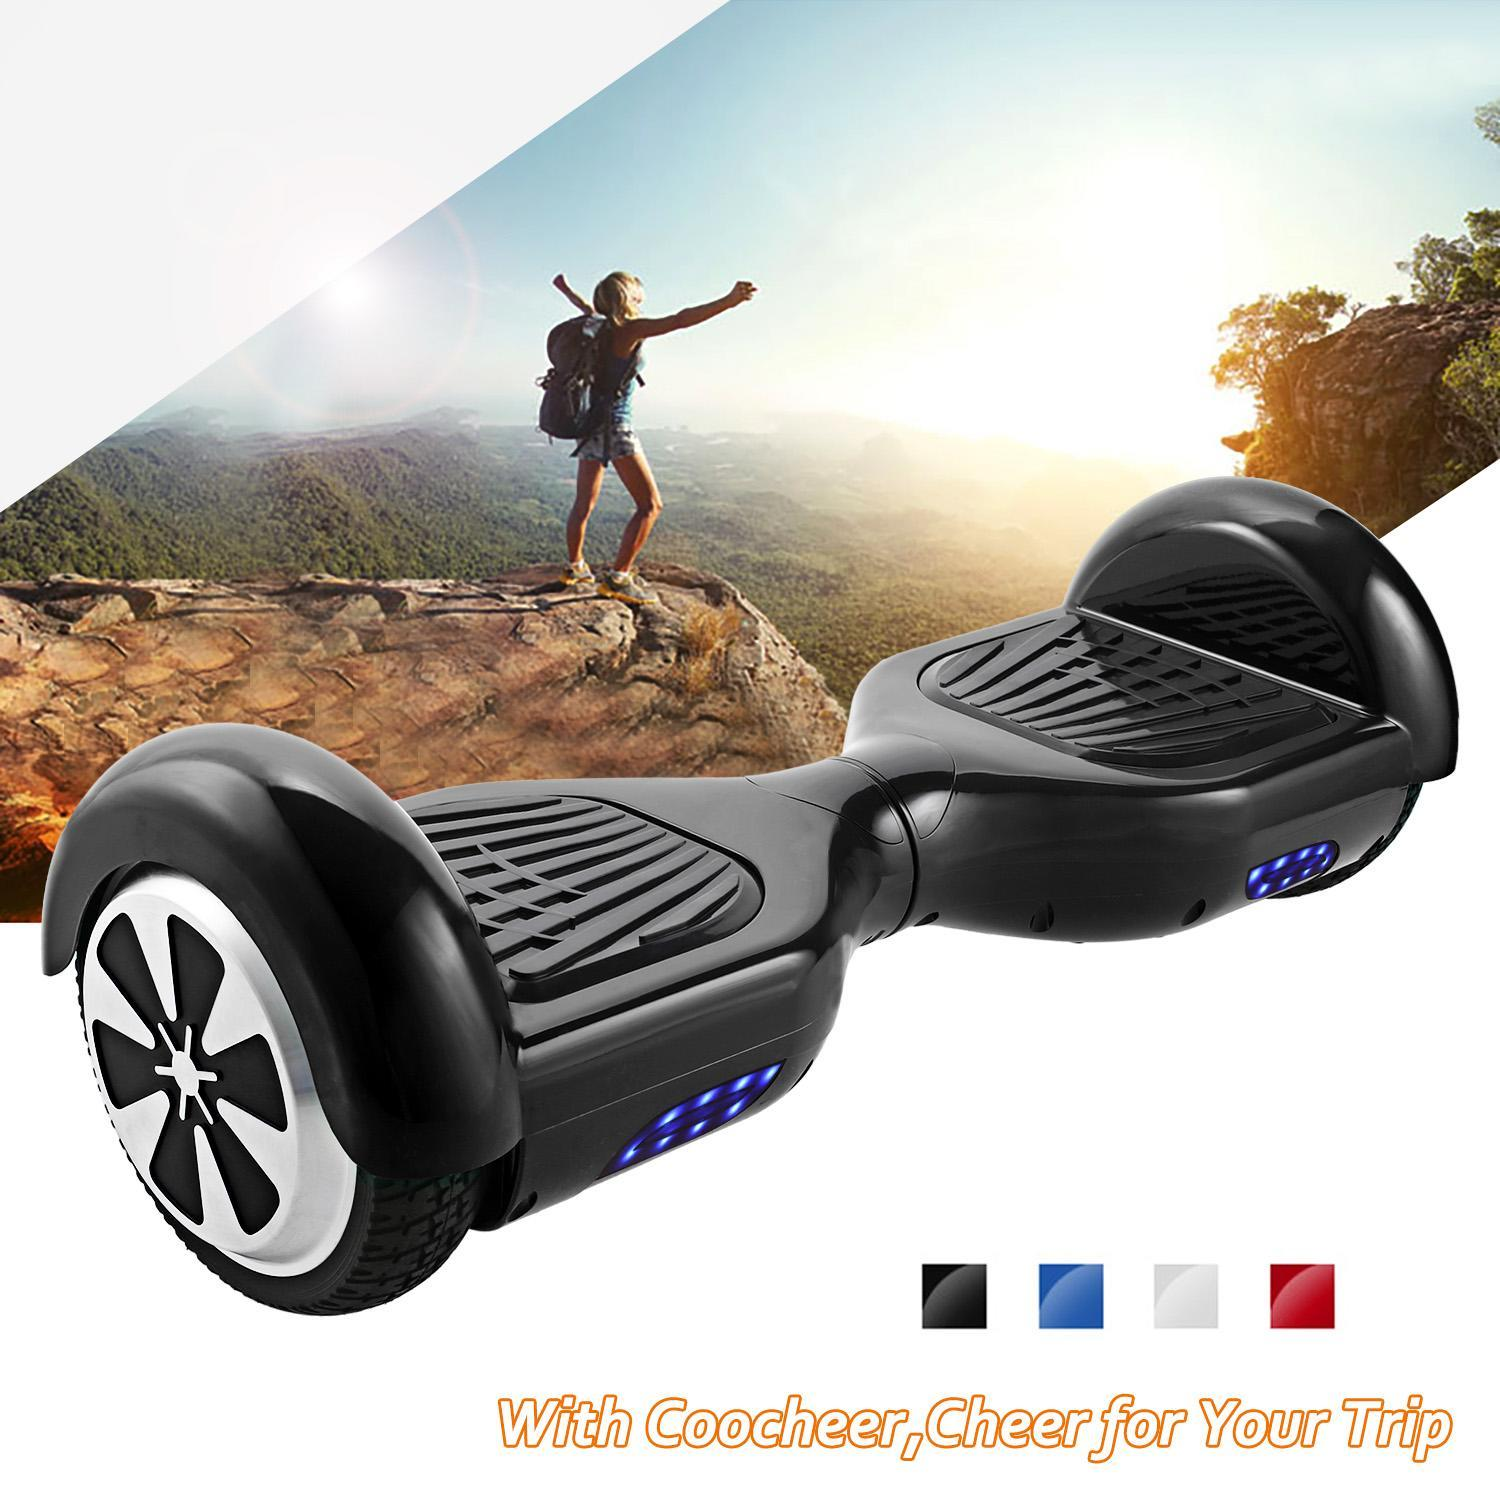 Electric Skateboard Scooter Motorized 2 Wheel Hover Board All-Terrain Tires Personal Hover Transporter HPPY